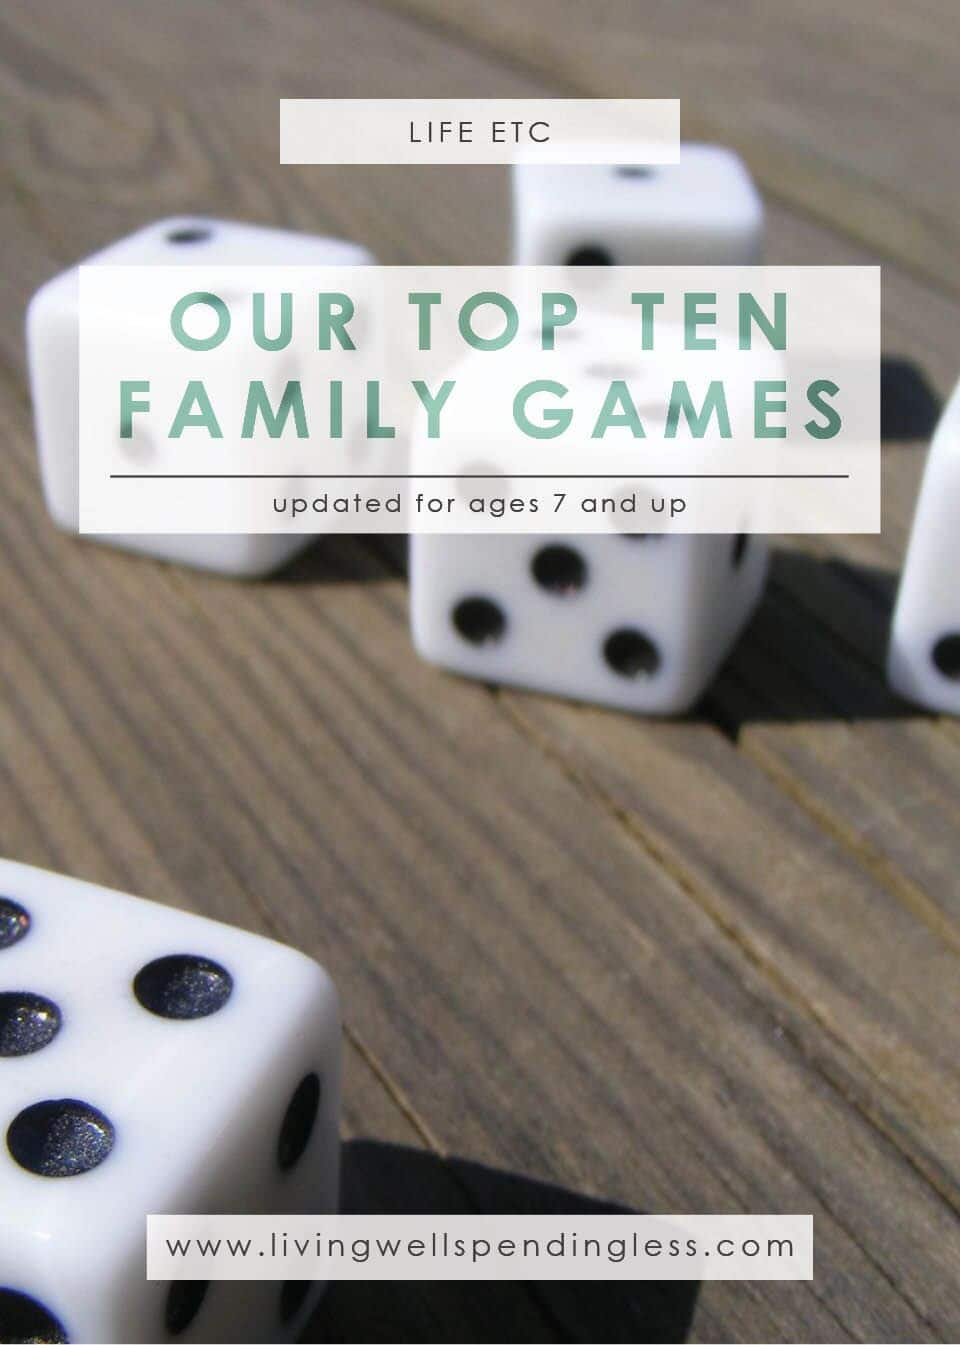 Our Top 10 Family Games for Kids Ages 7 & Up